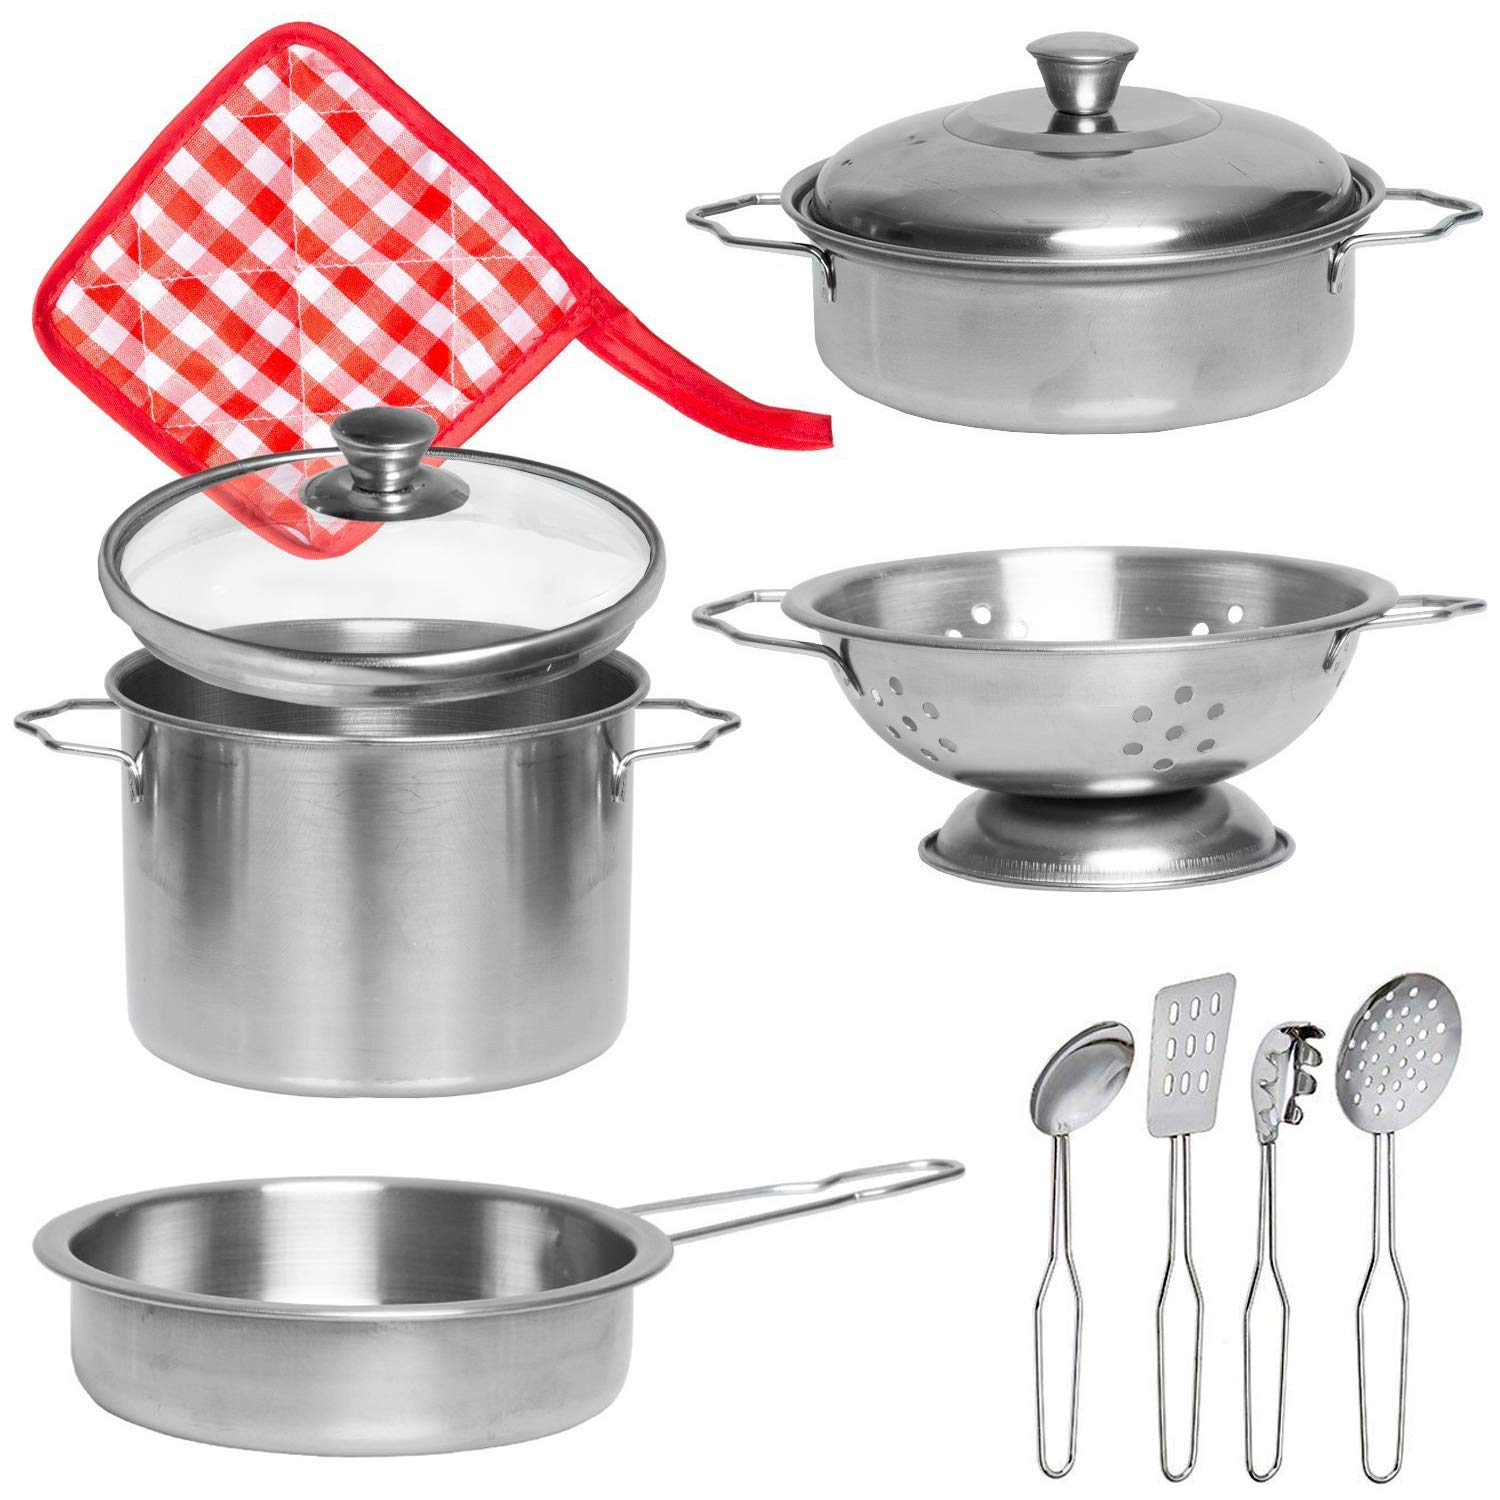 Liberty Imports Stainless Steel Metal Pots and Pans Kitchen Cookware Playset for Kids with Cooking Utensils Set by Liberty Imports